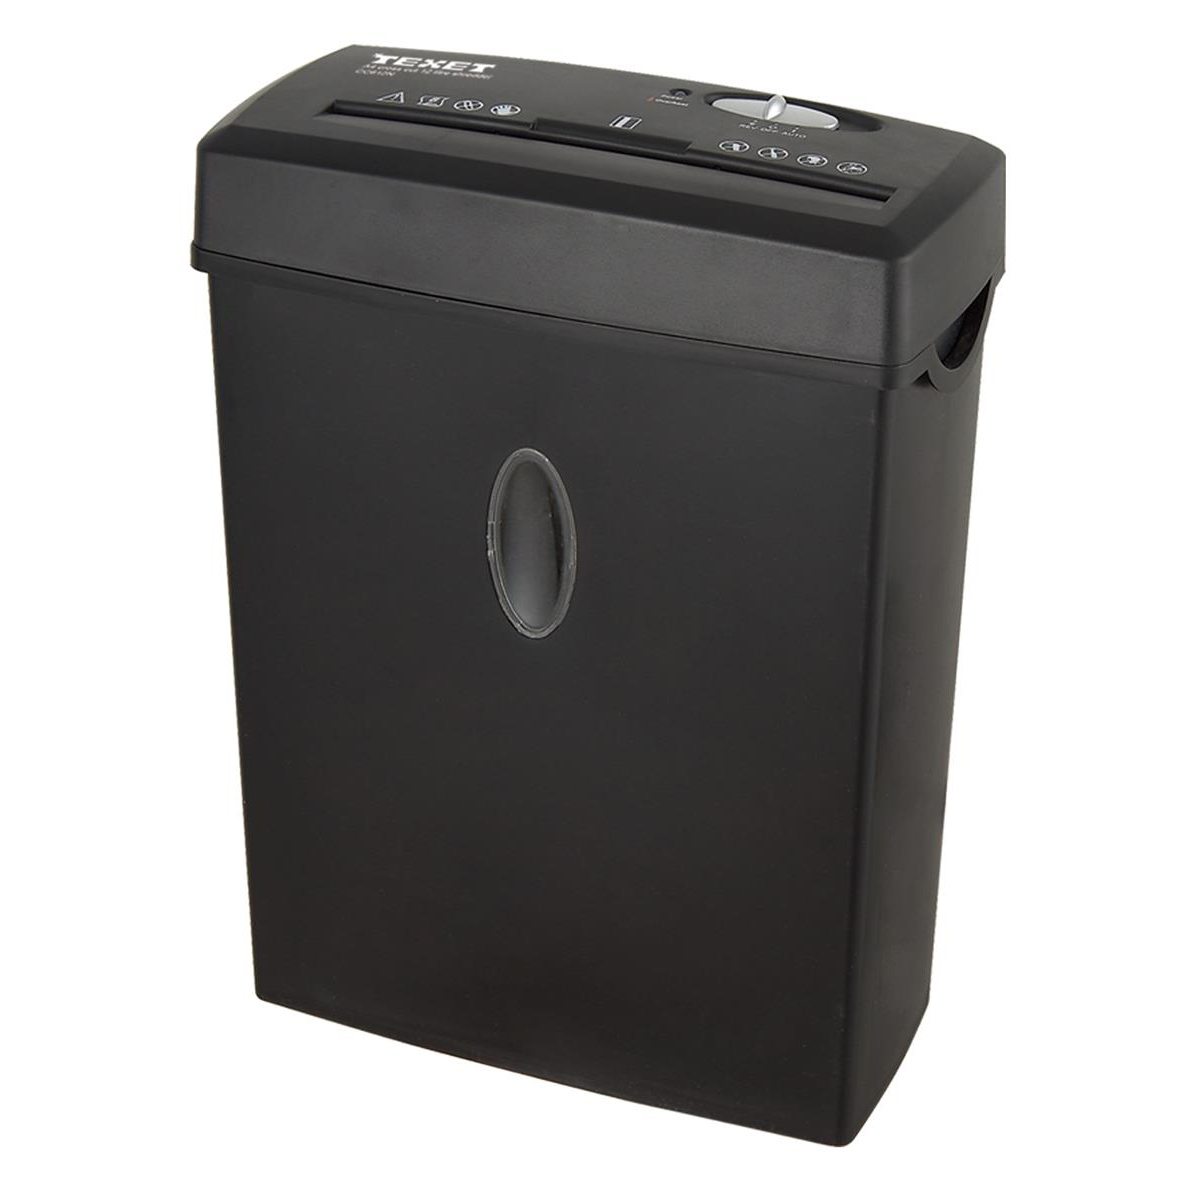 Image for Texet Personal Shredder Cross Cut DIN3 4x30mm P-3 12 Litres Ref CC612N